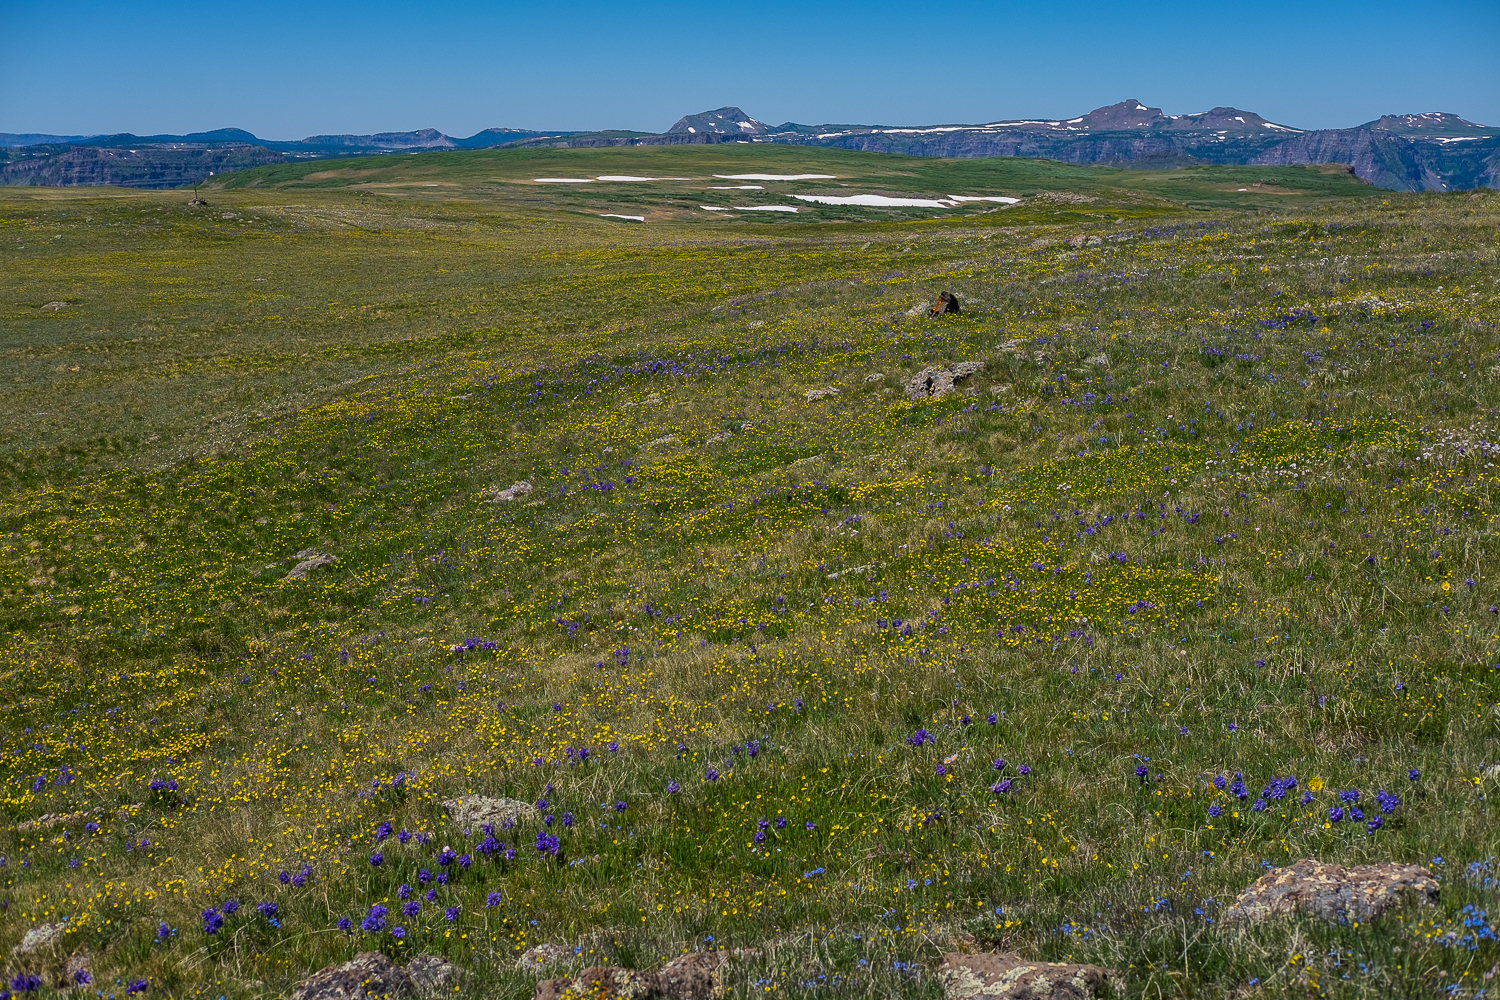 The wildflowers were just a sight to behold